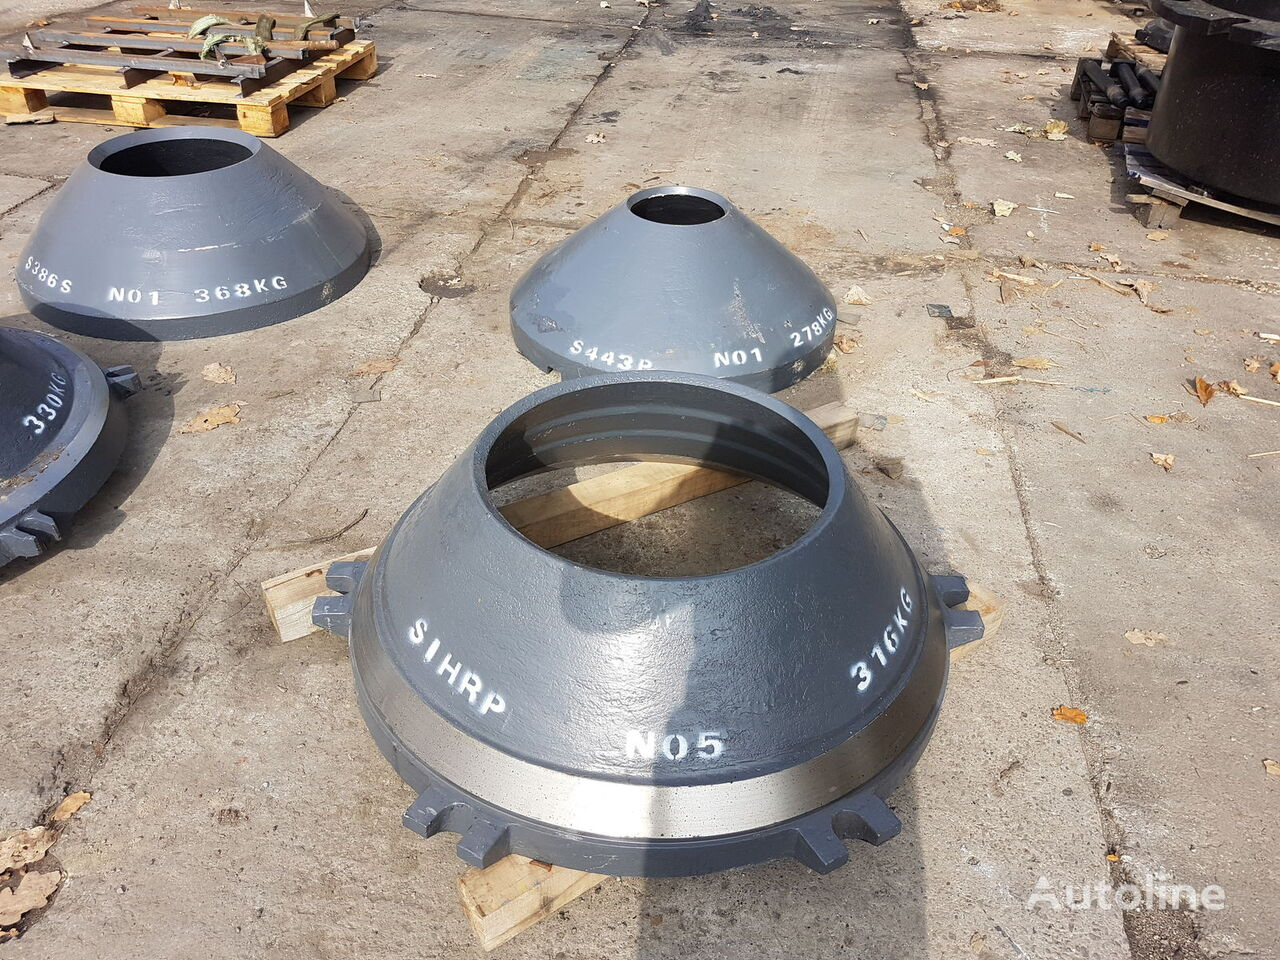 DKT 900 wear parts cone mantle other equipment